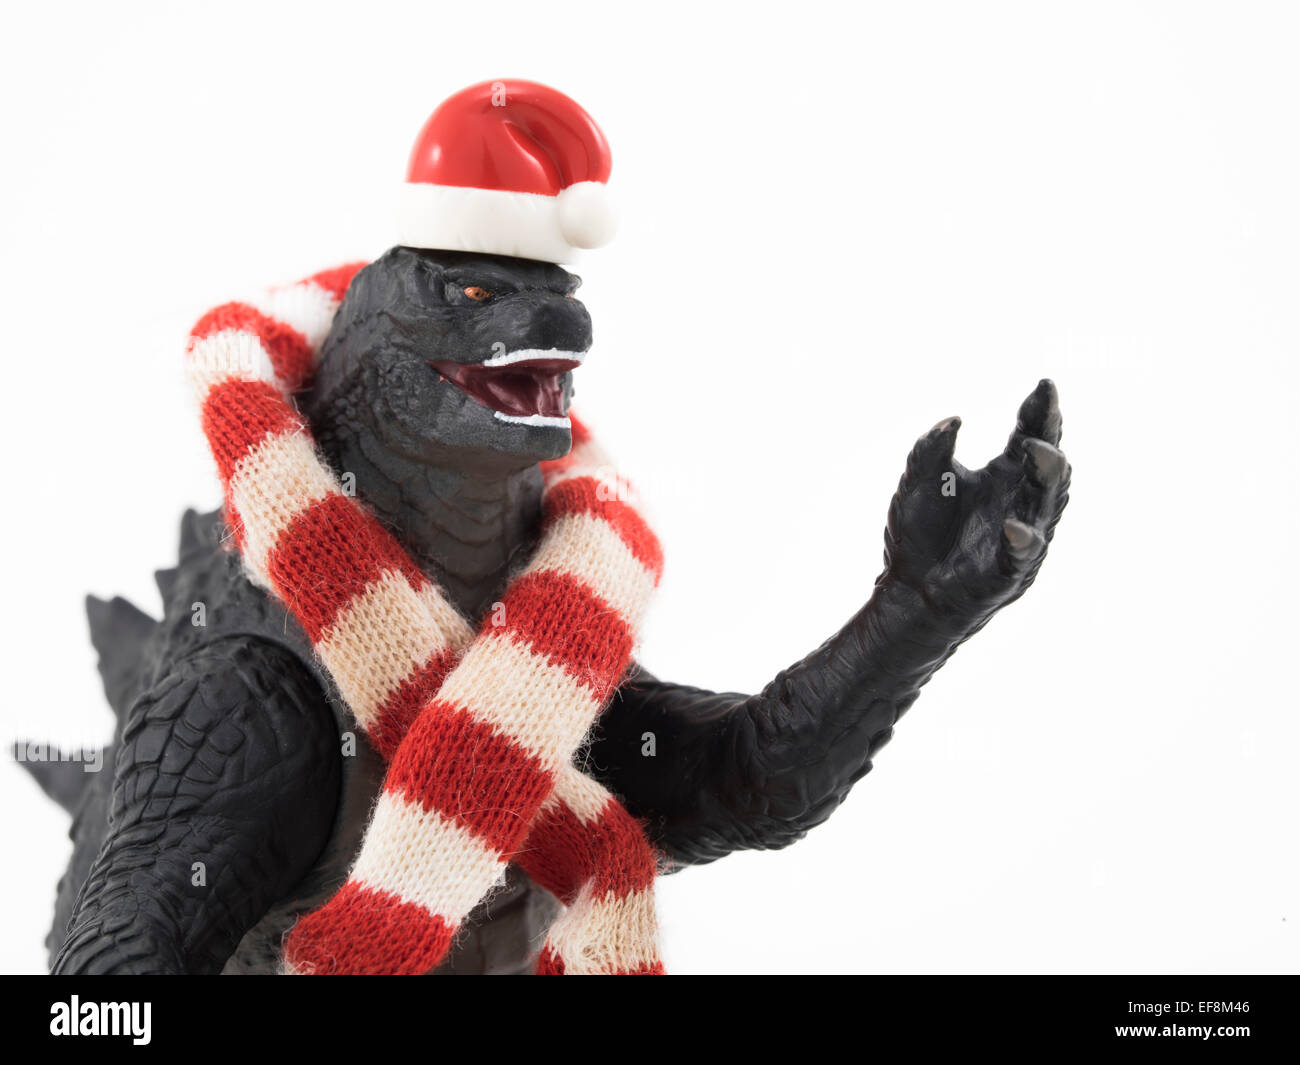 Christmas Movie Stock Photos & Christmas Movie Stock Images - Alamy